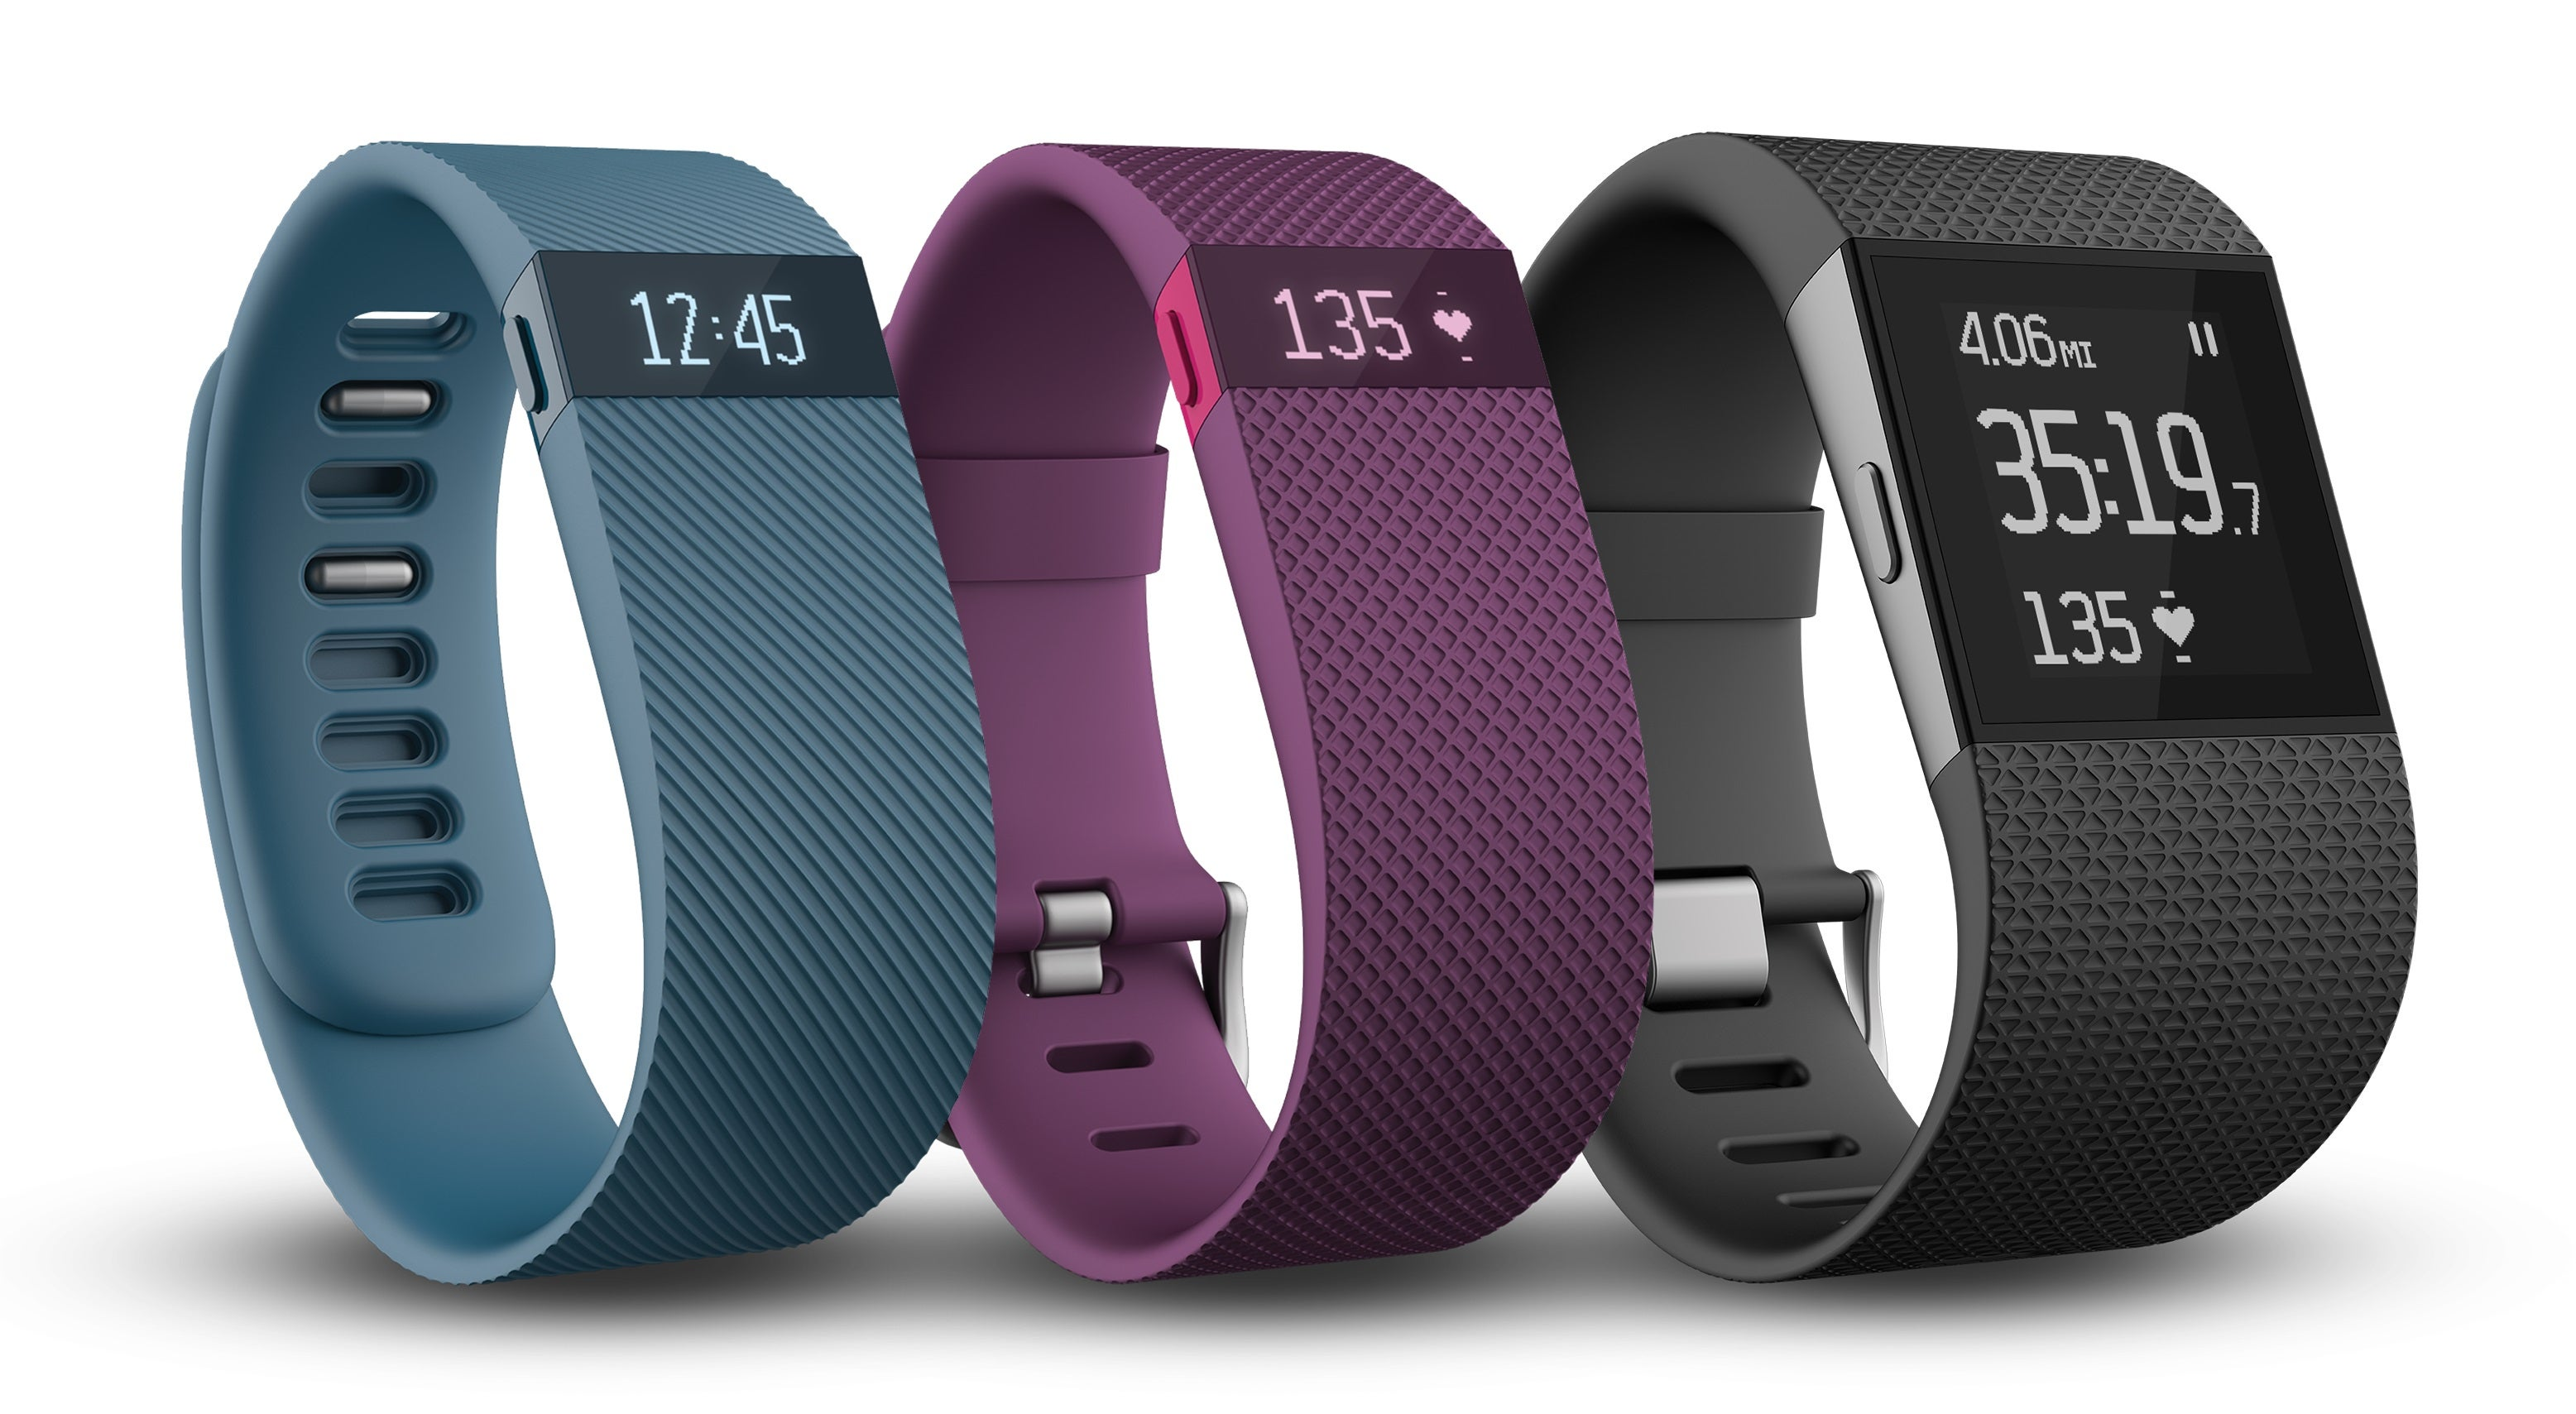 Fitbit Charge Finally Arrives, Charge HR and Surge Land in 2015